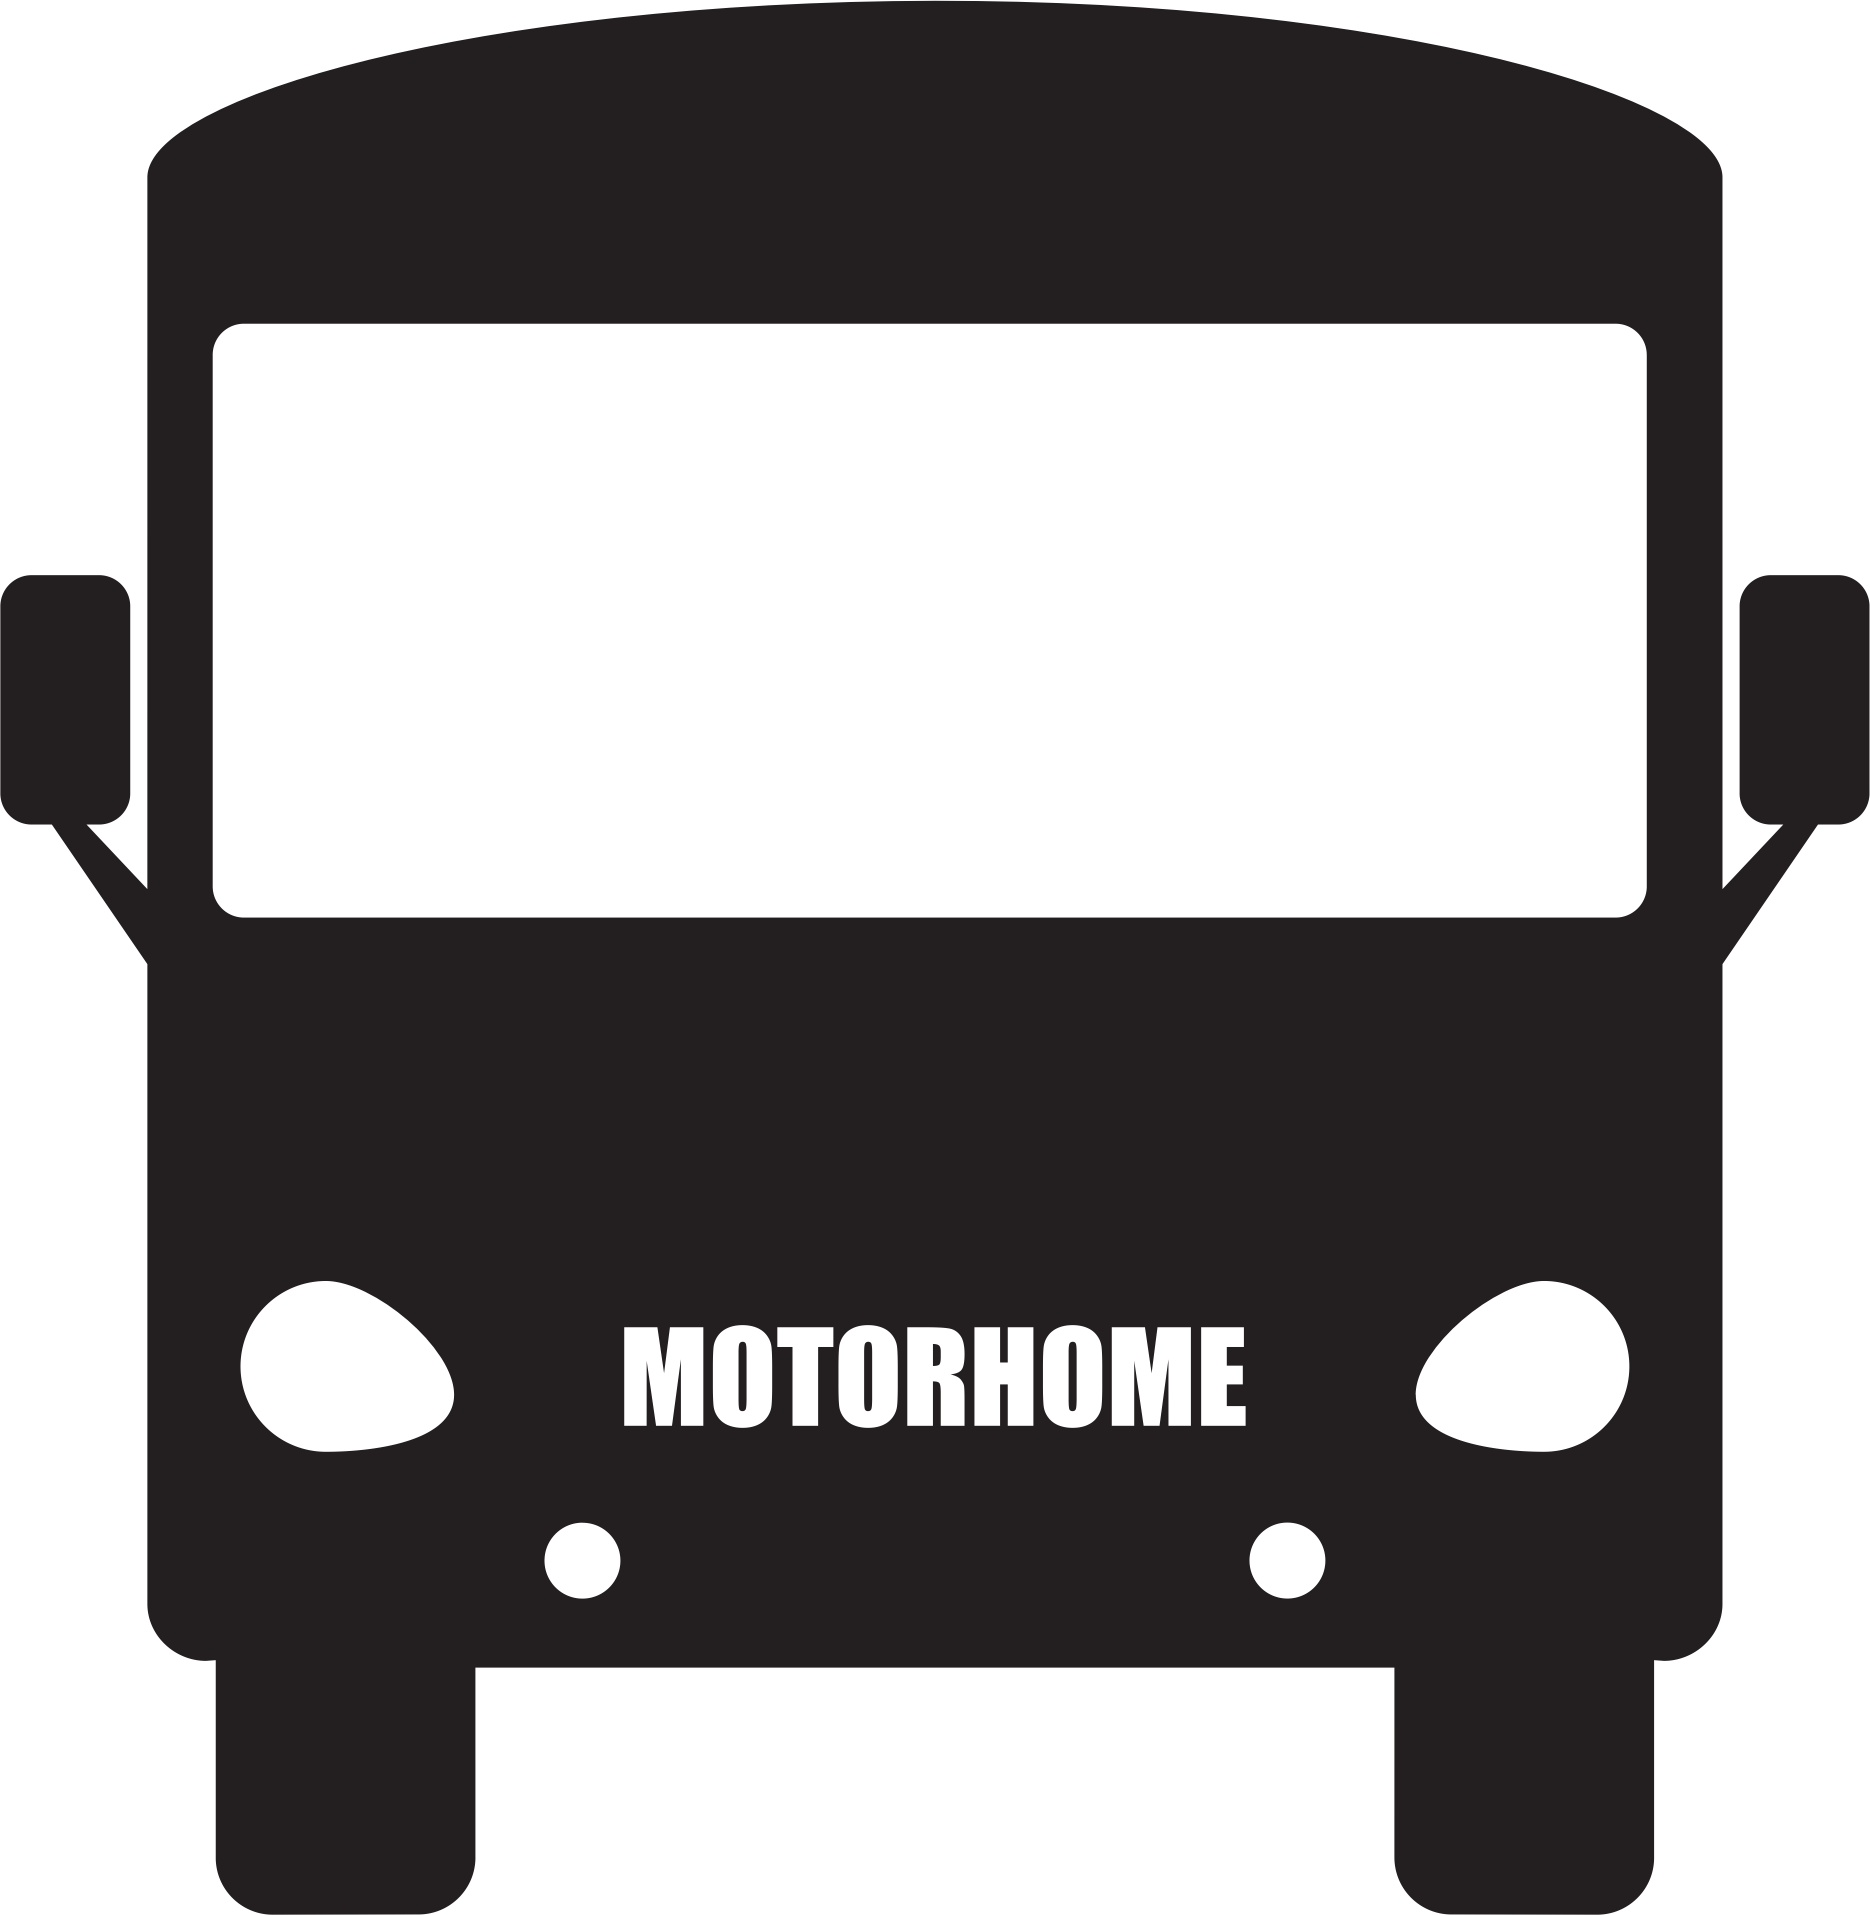 Bus clipart silhouette Silhouette Motorhome Clipart Silhouette Motorhome